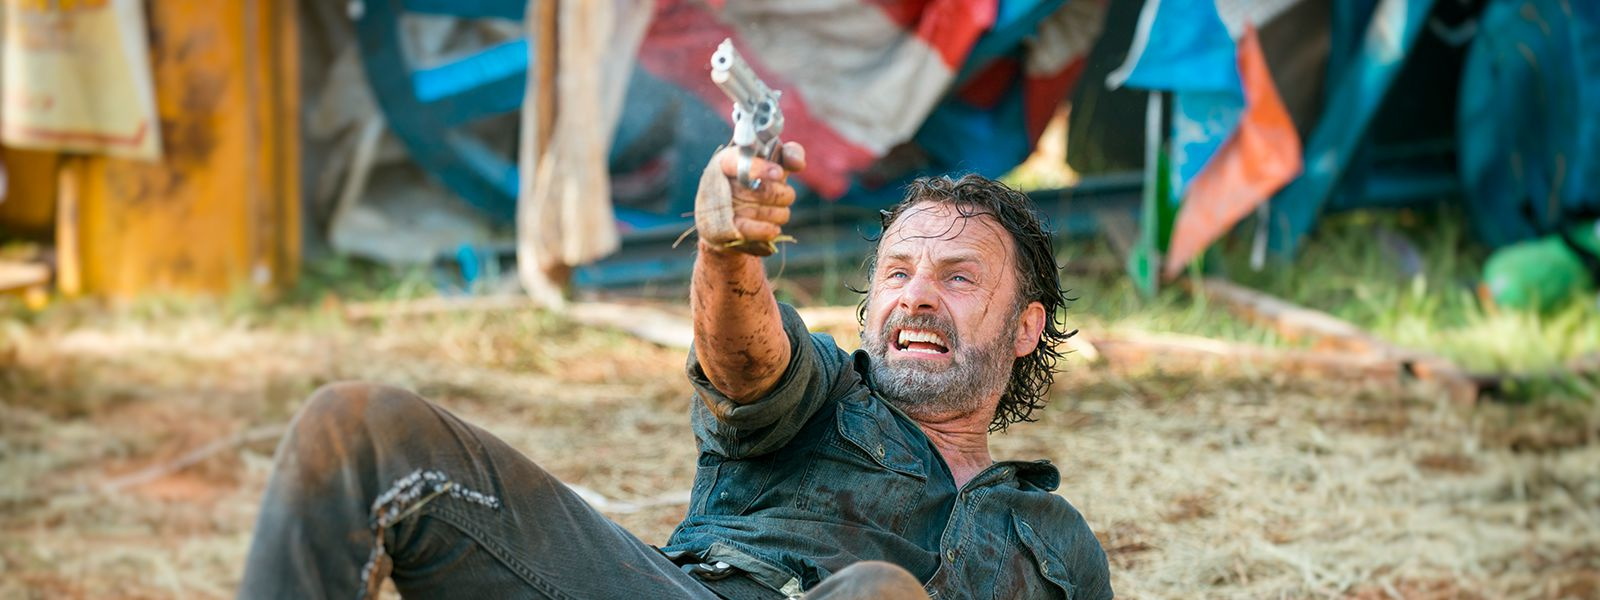 the-walking-dead-episode-712-rick-lincoln-post-800×600